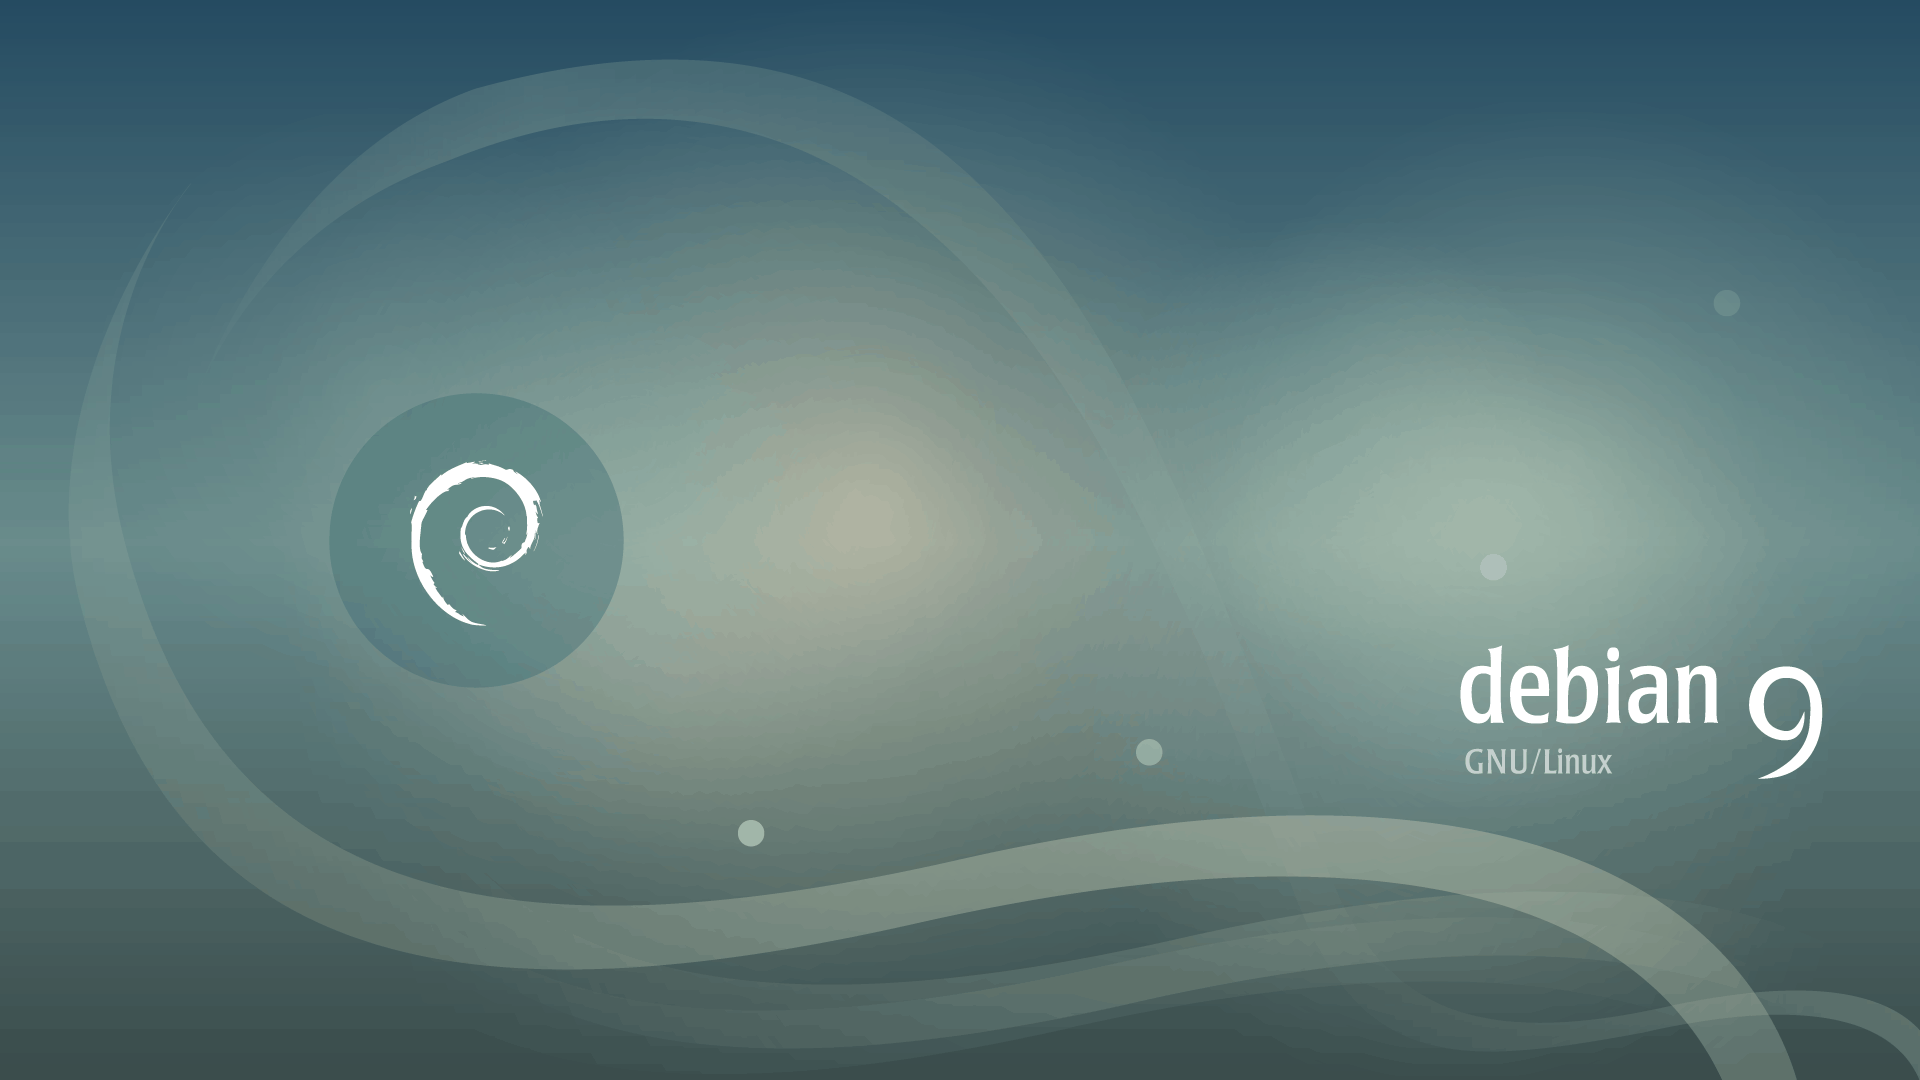 debian_9_softwaves_login